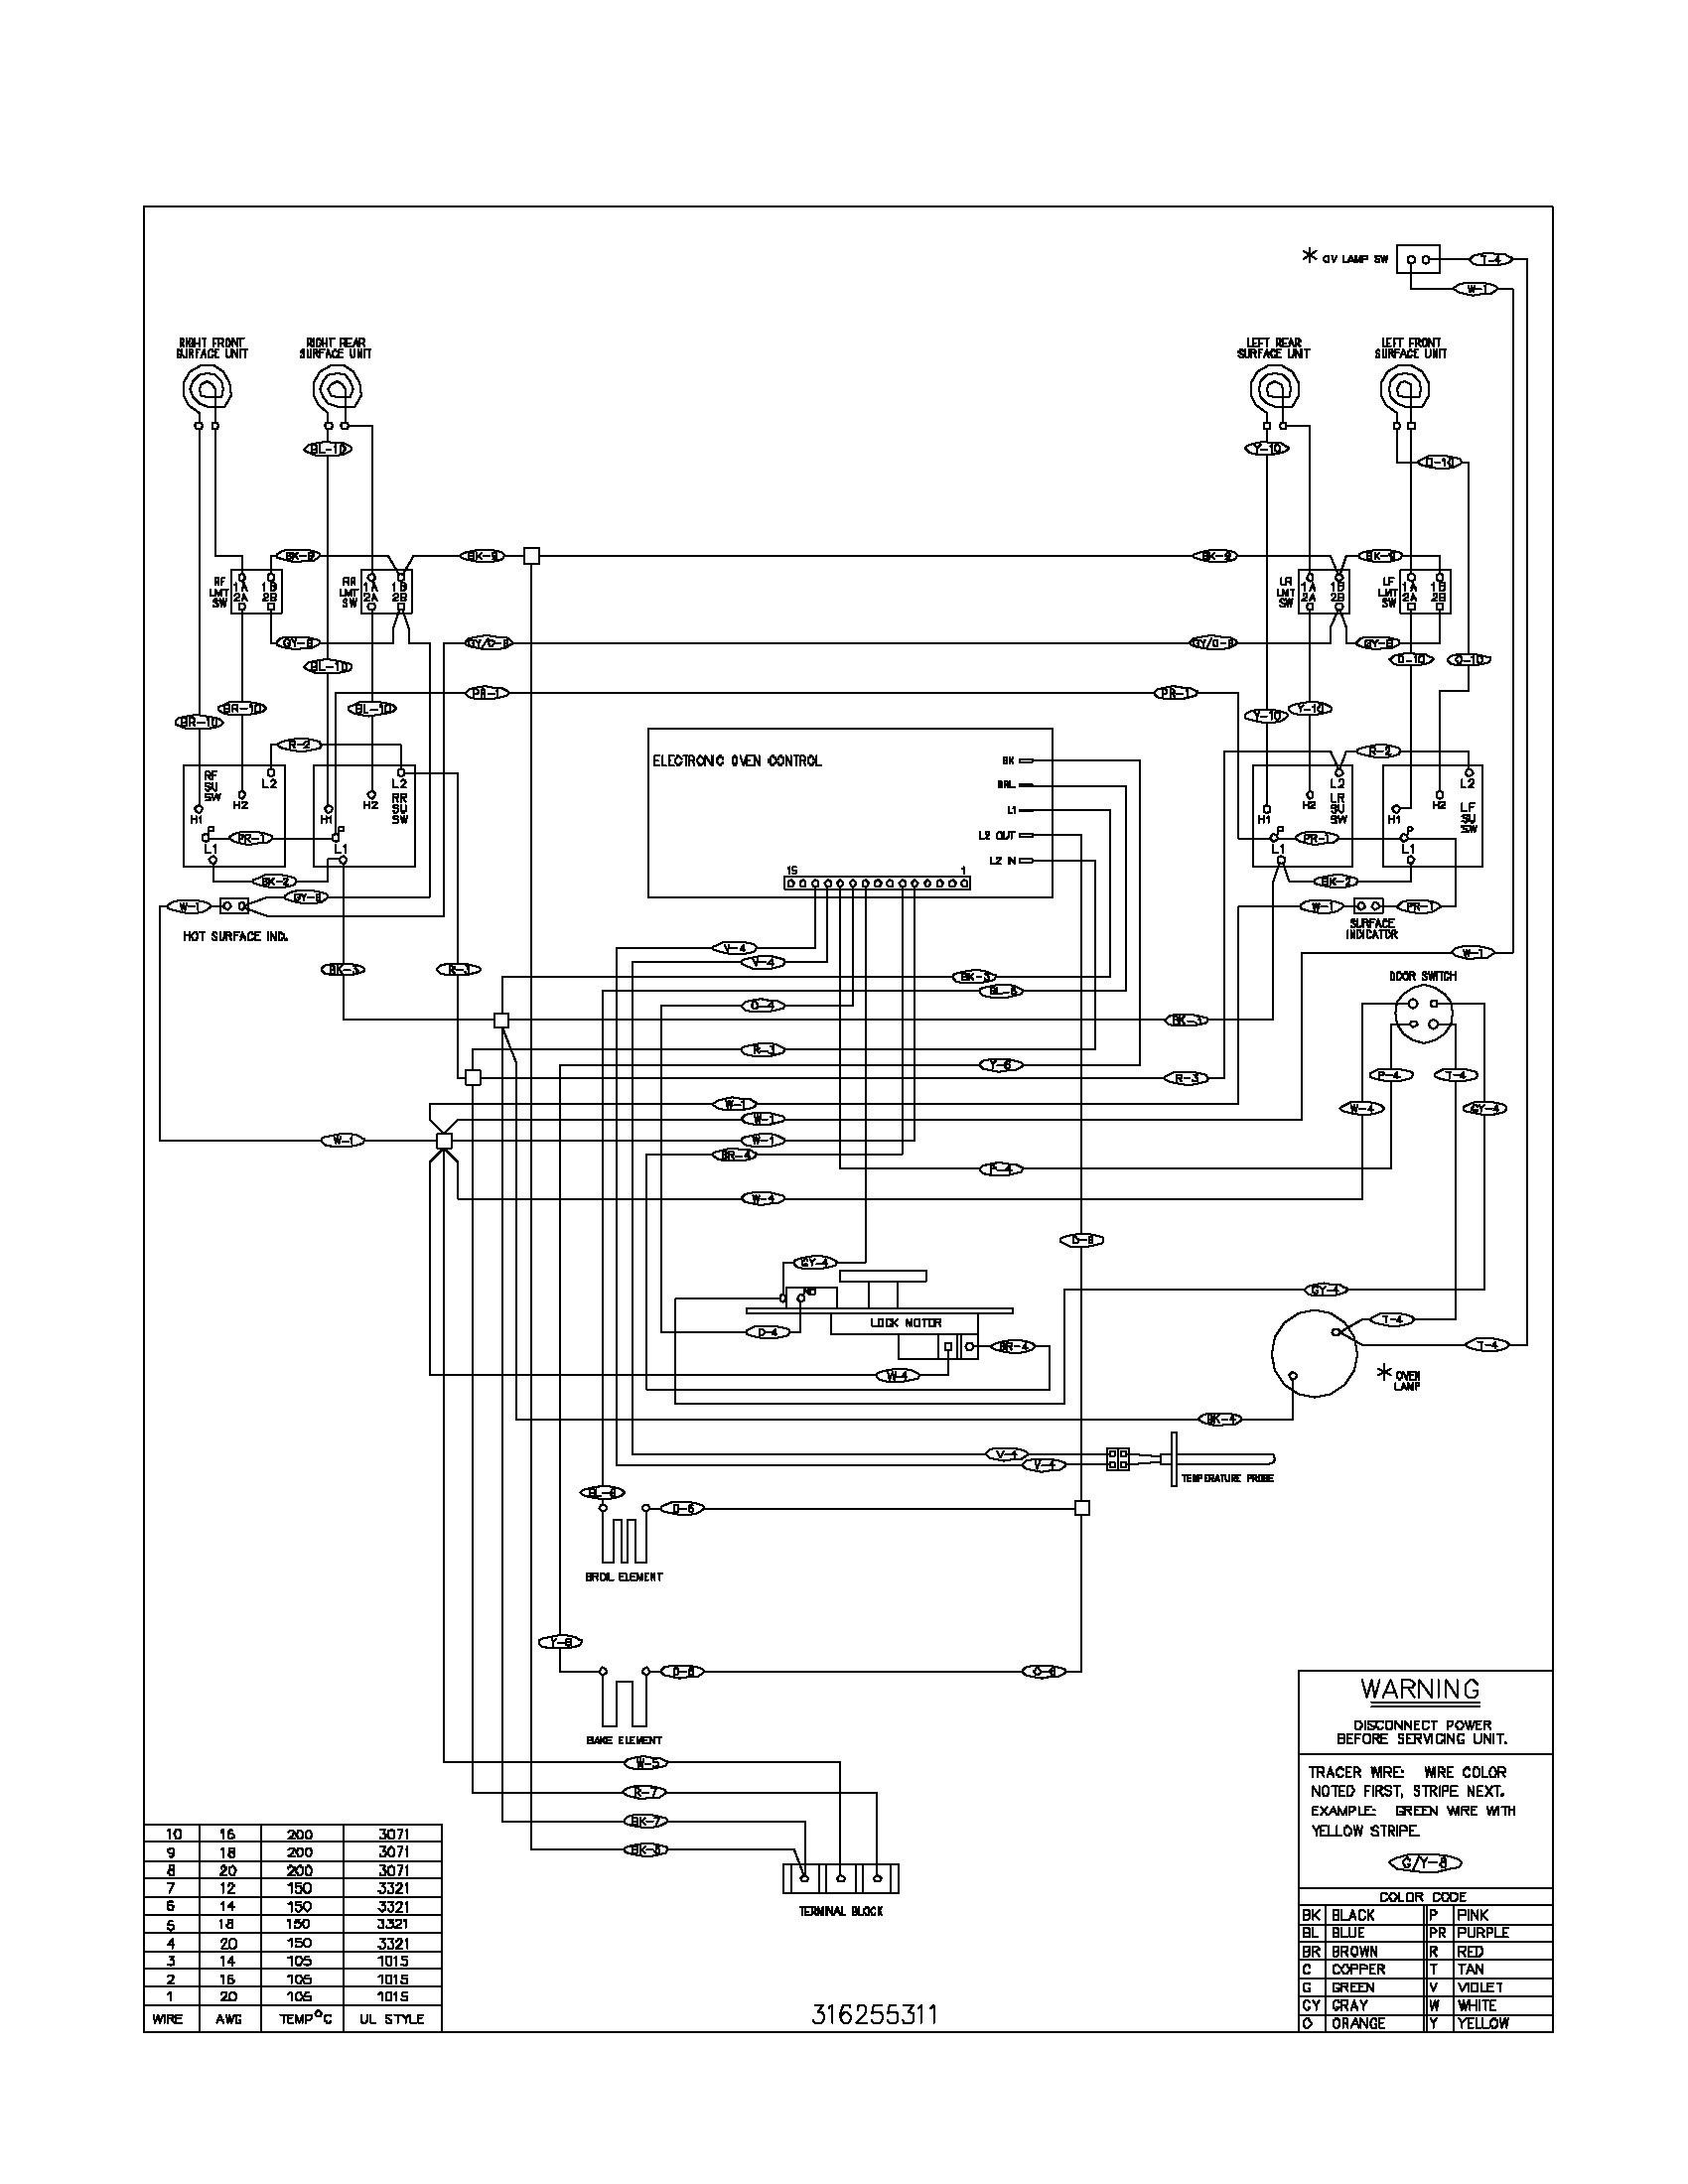 intertherm mobile home electric furnace wiring diagram stem and leaf key image